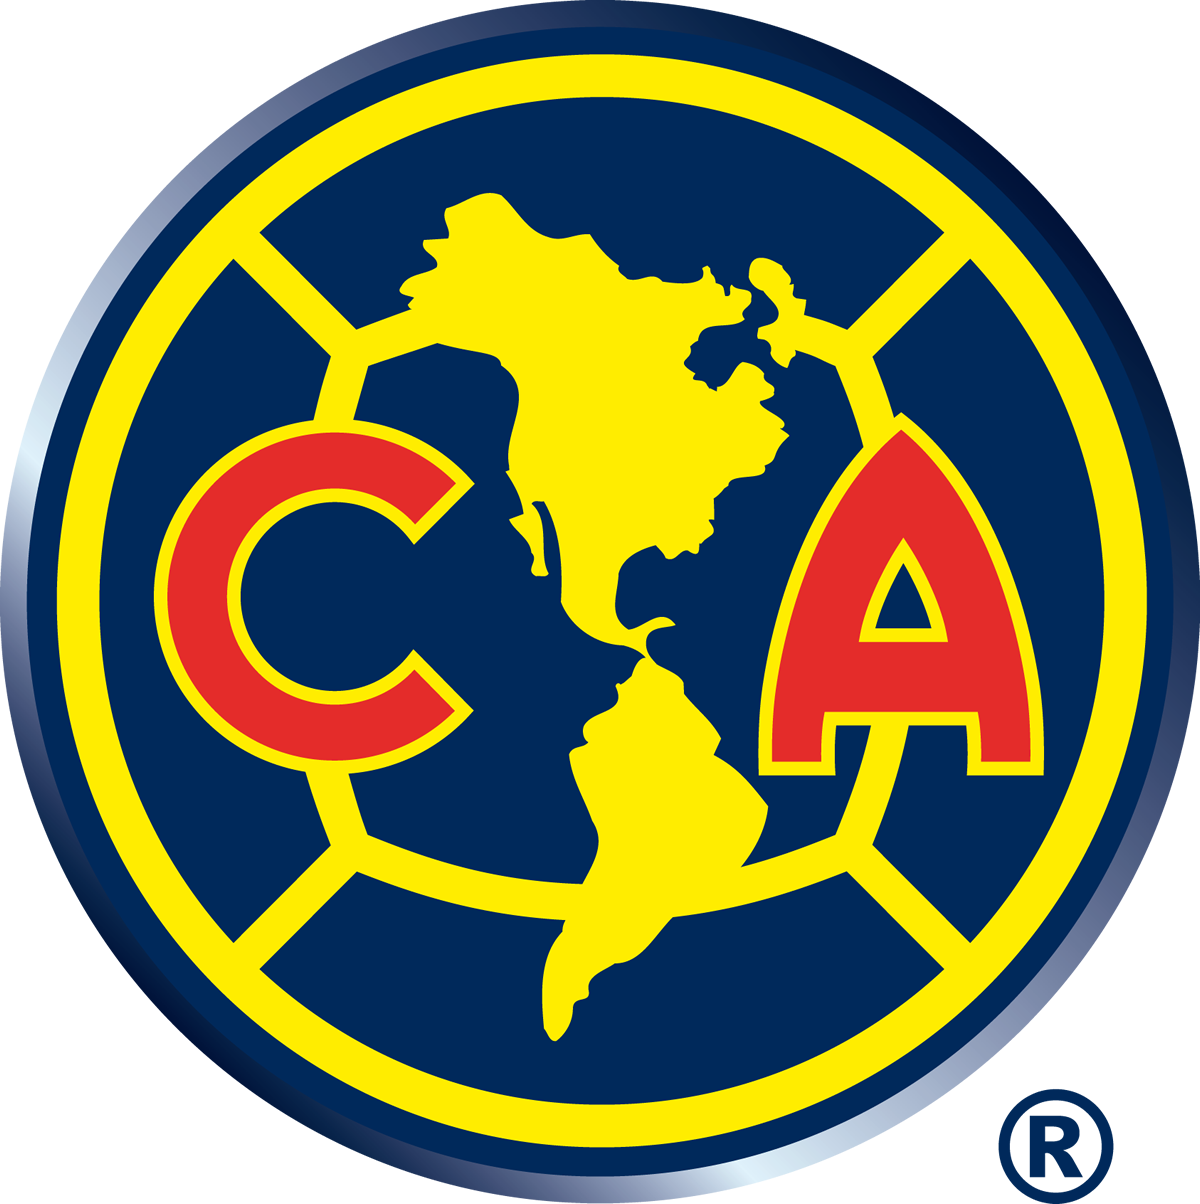 Club América - Wikipedia, the free encyclopedia